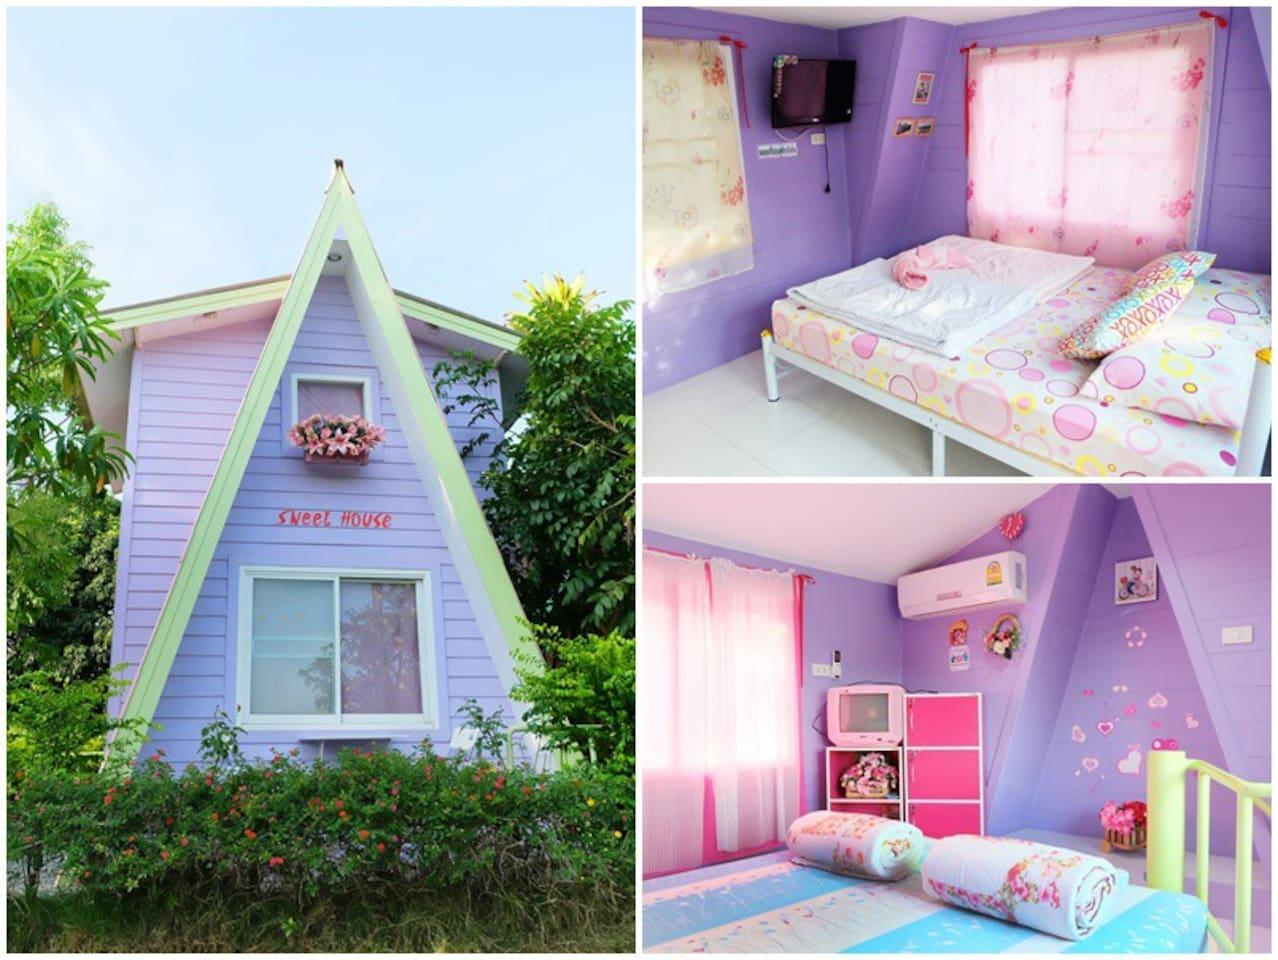 2 Floors Pastel House With Free Breakfast For 4